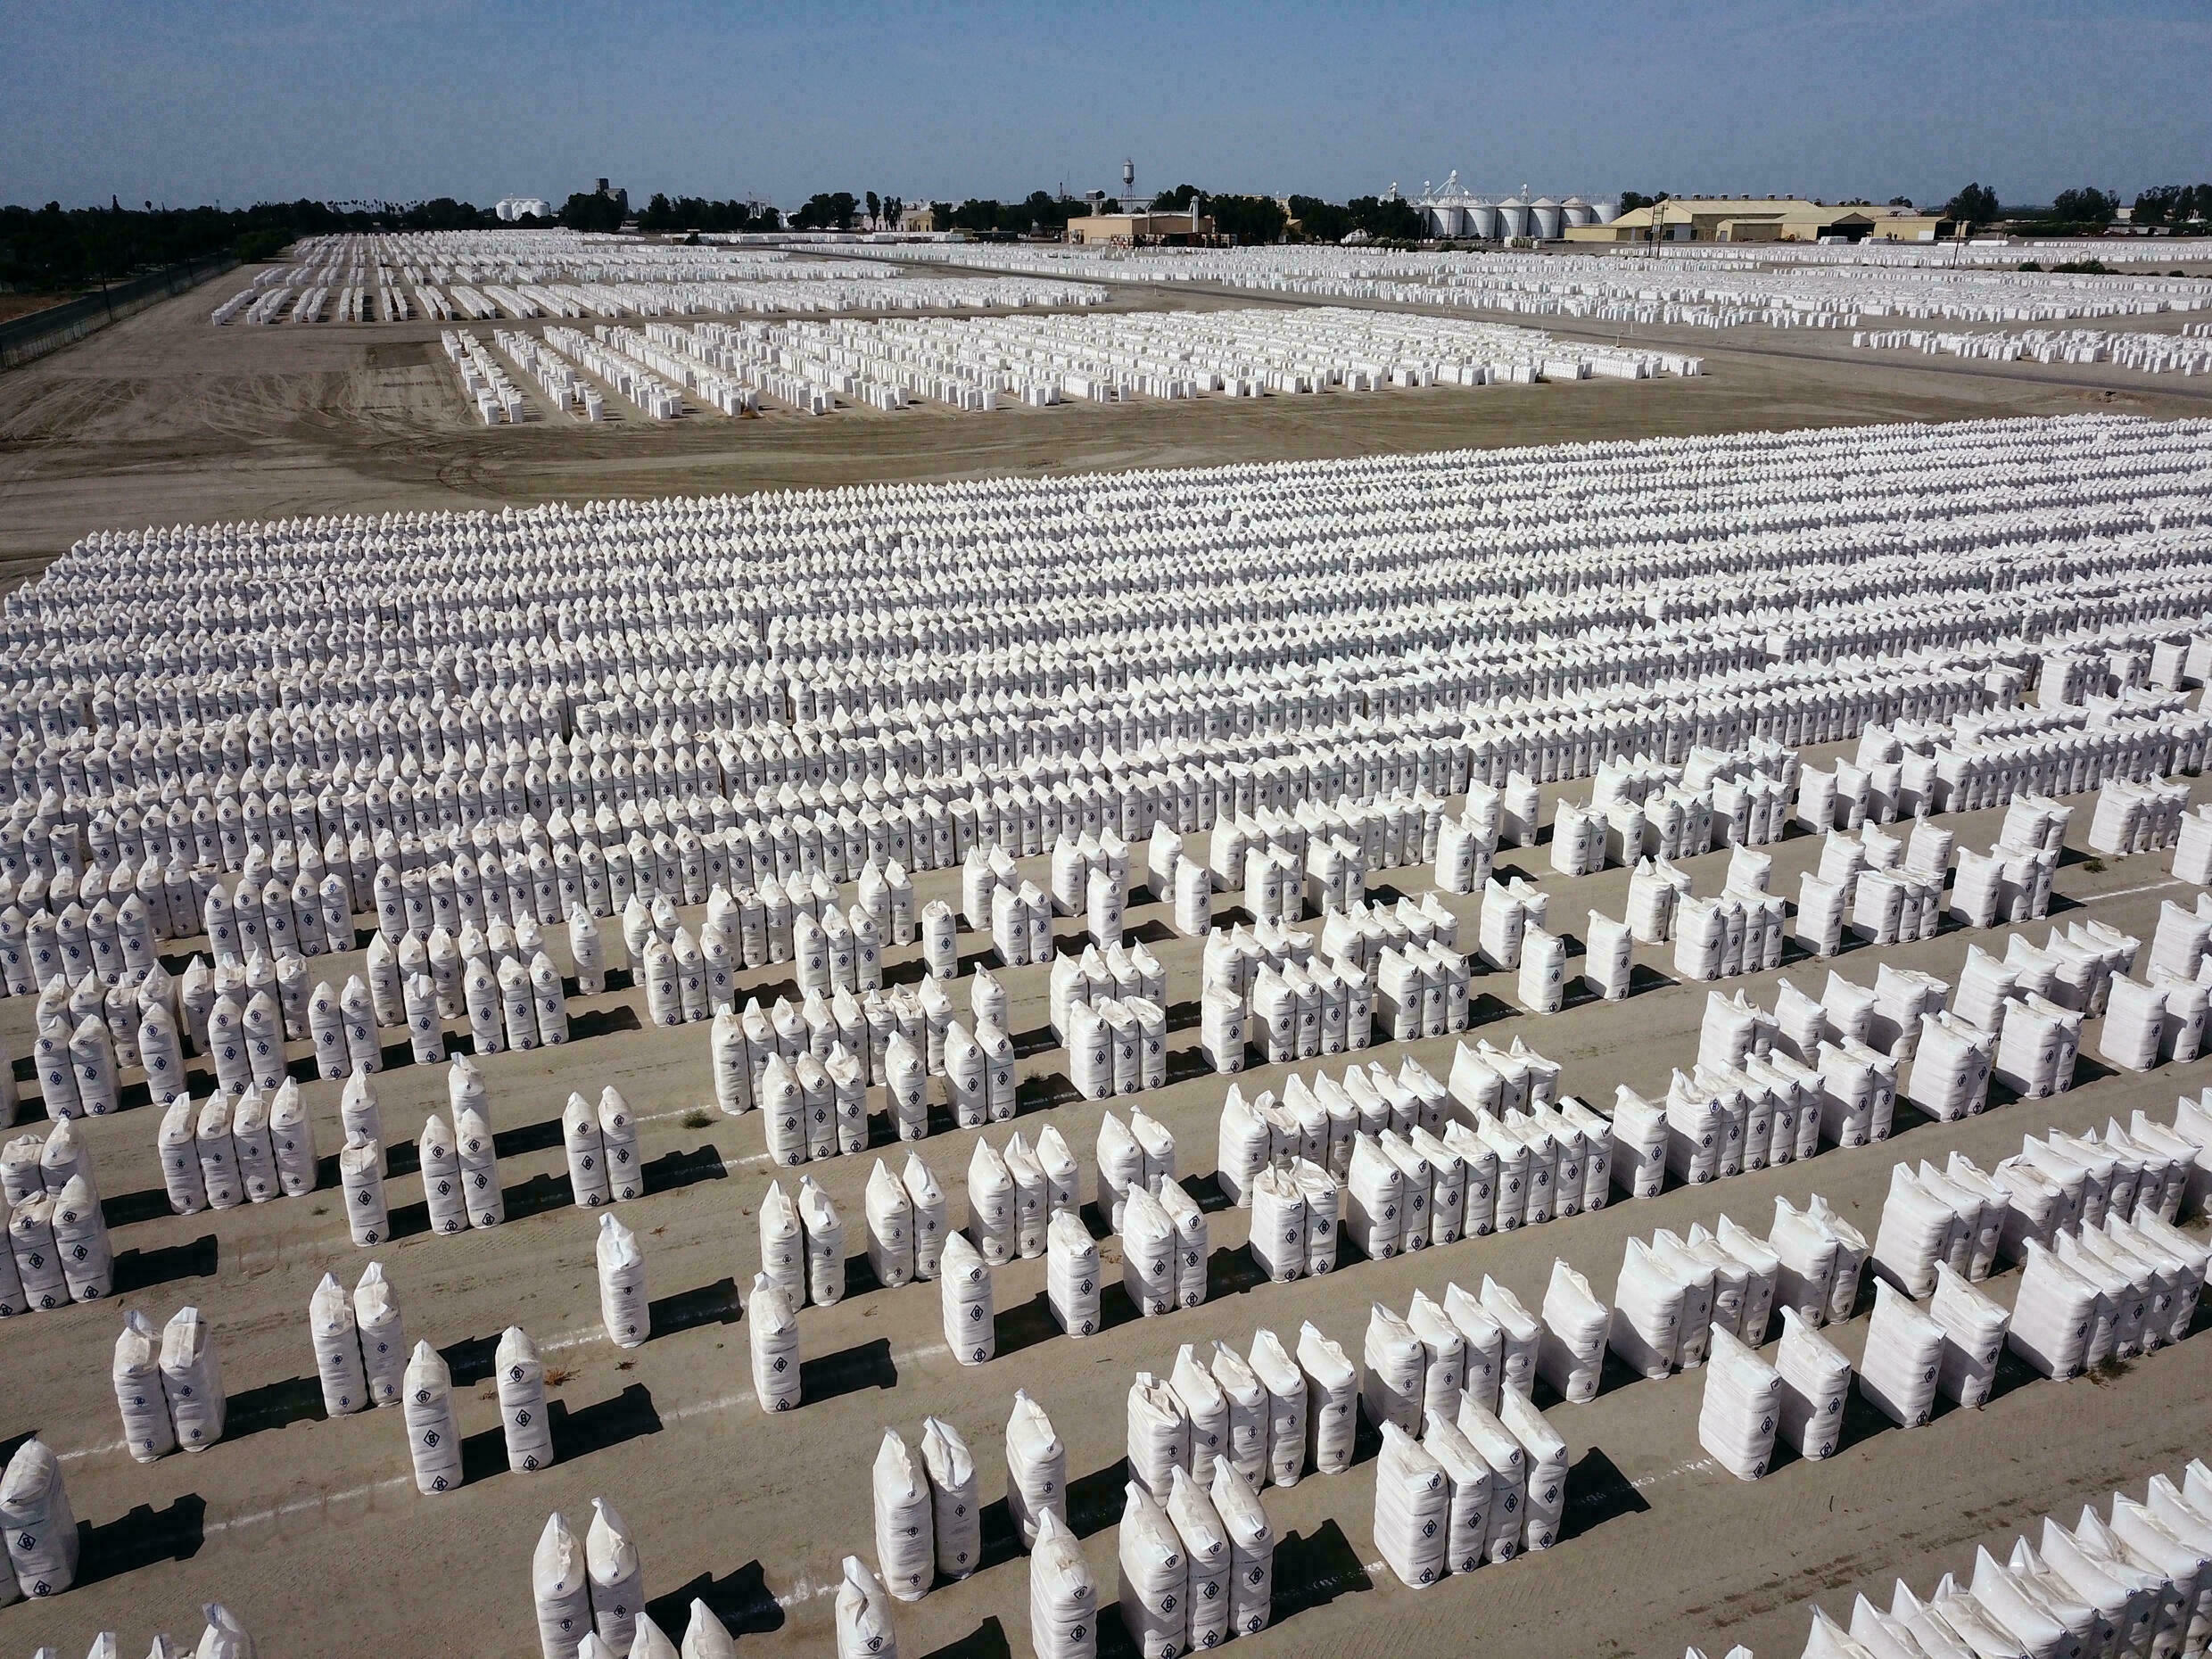 The Corcoran area is a major cotton producer; these thousands of bags of cotton belong to major US producer J.G. Boswell